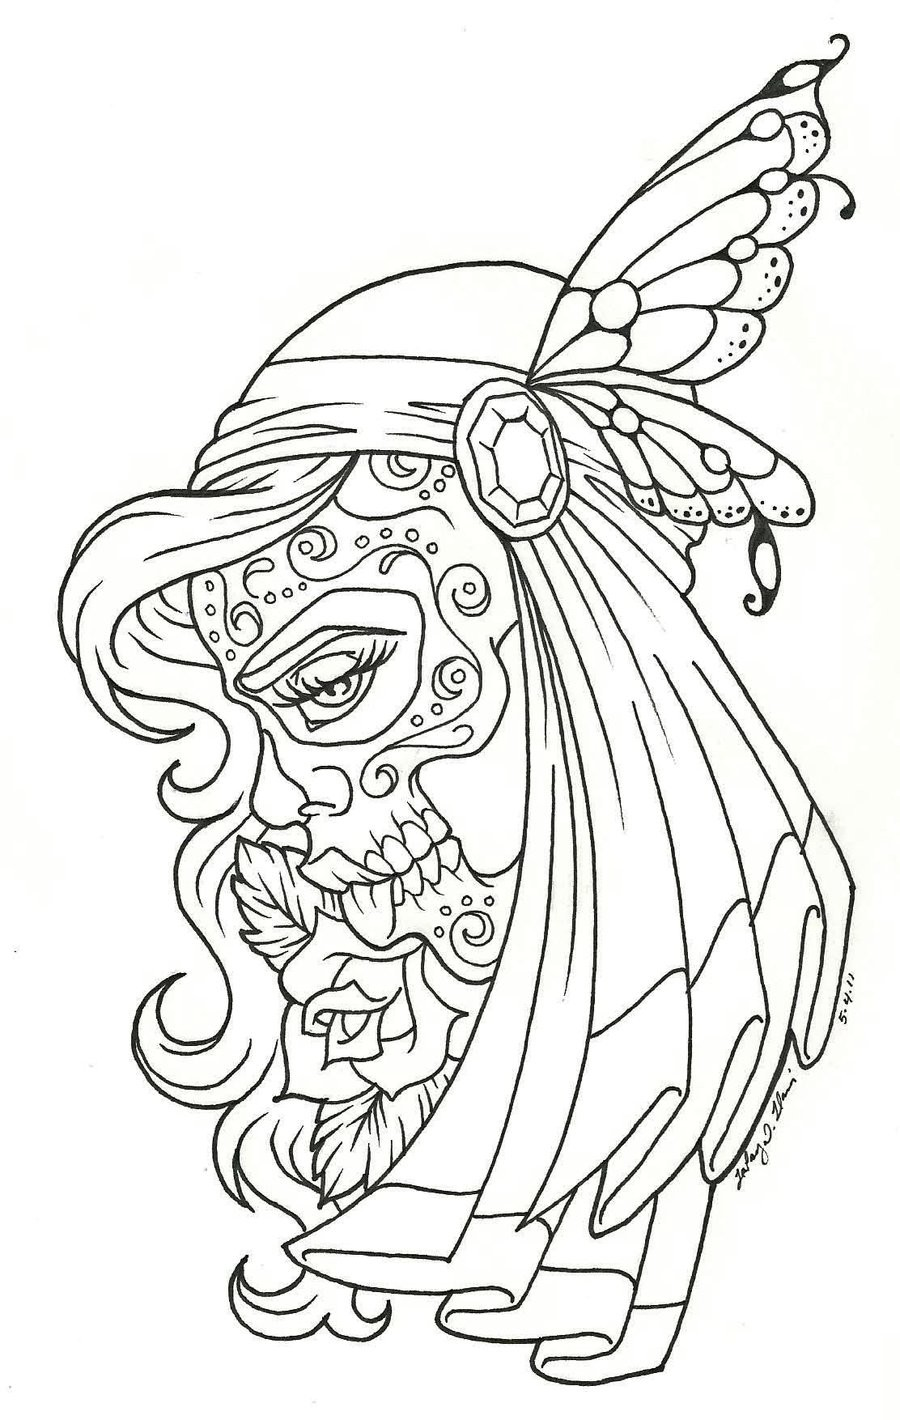 Tattoo Coloring Pages Printable At Getdrawings Com Free